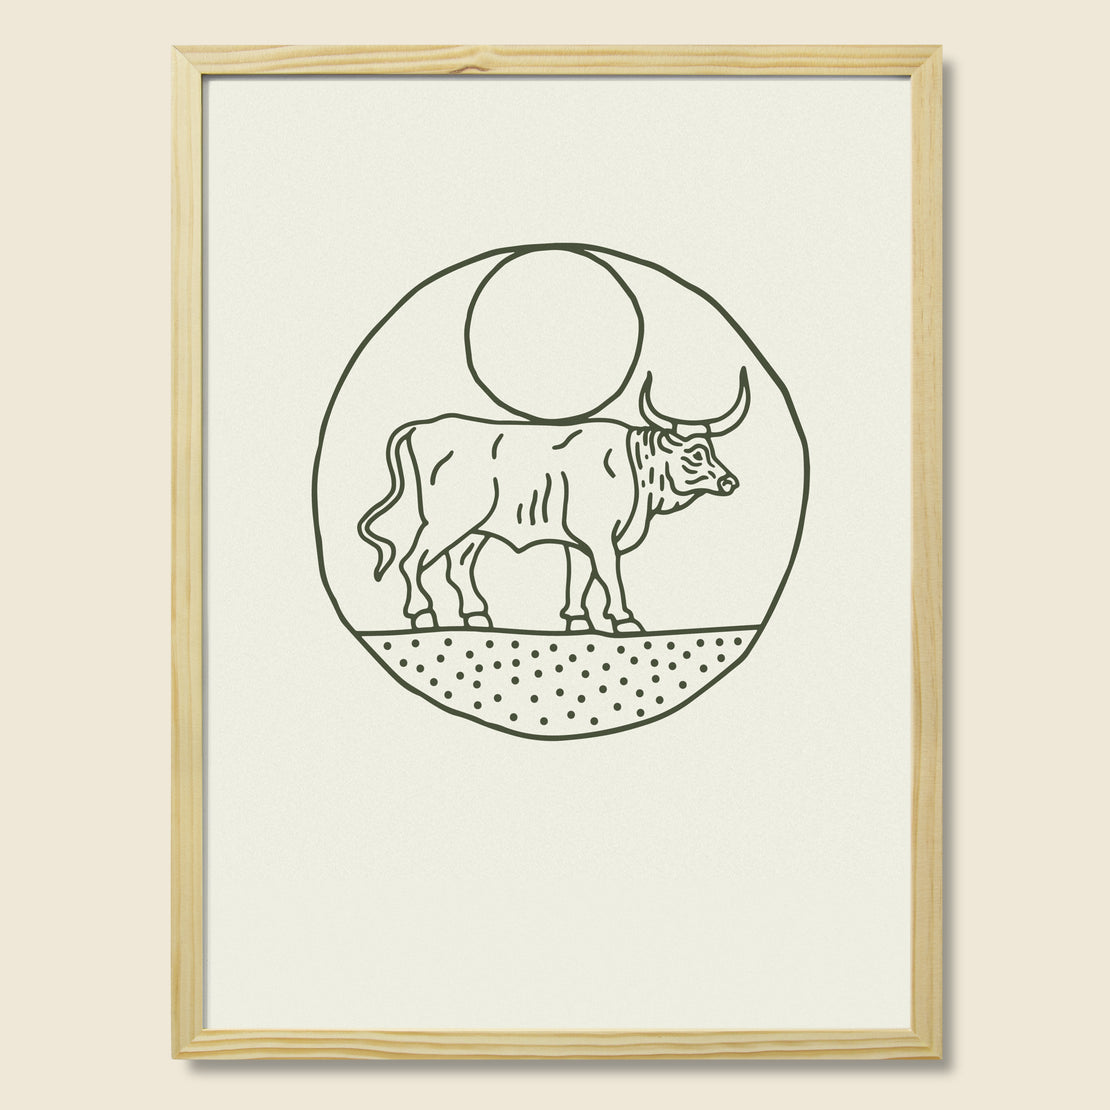 House of LAND Framed Print - Moon Bull